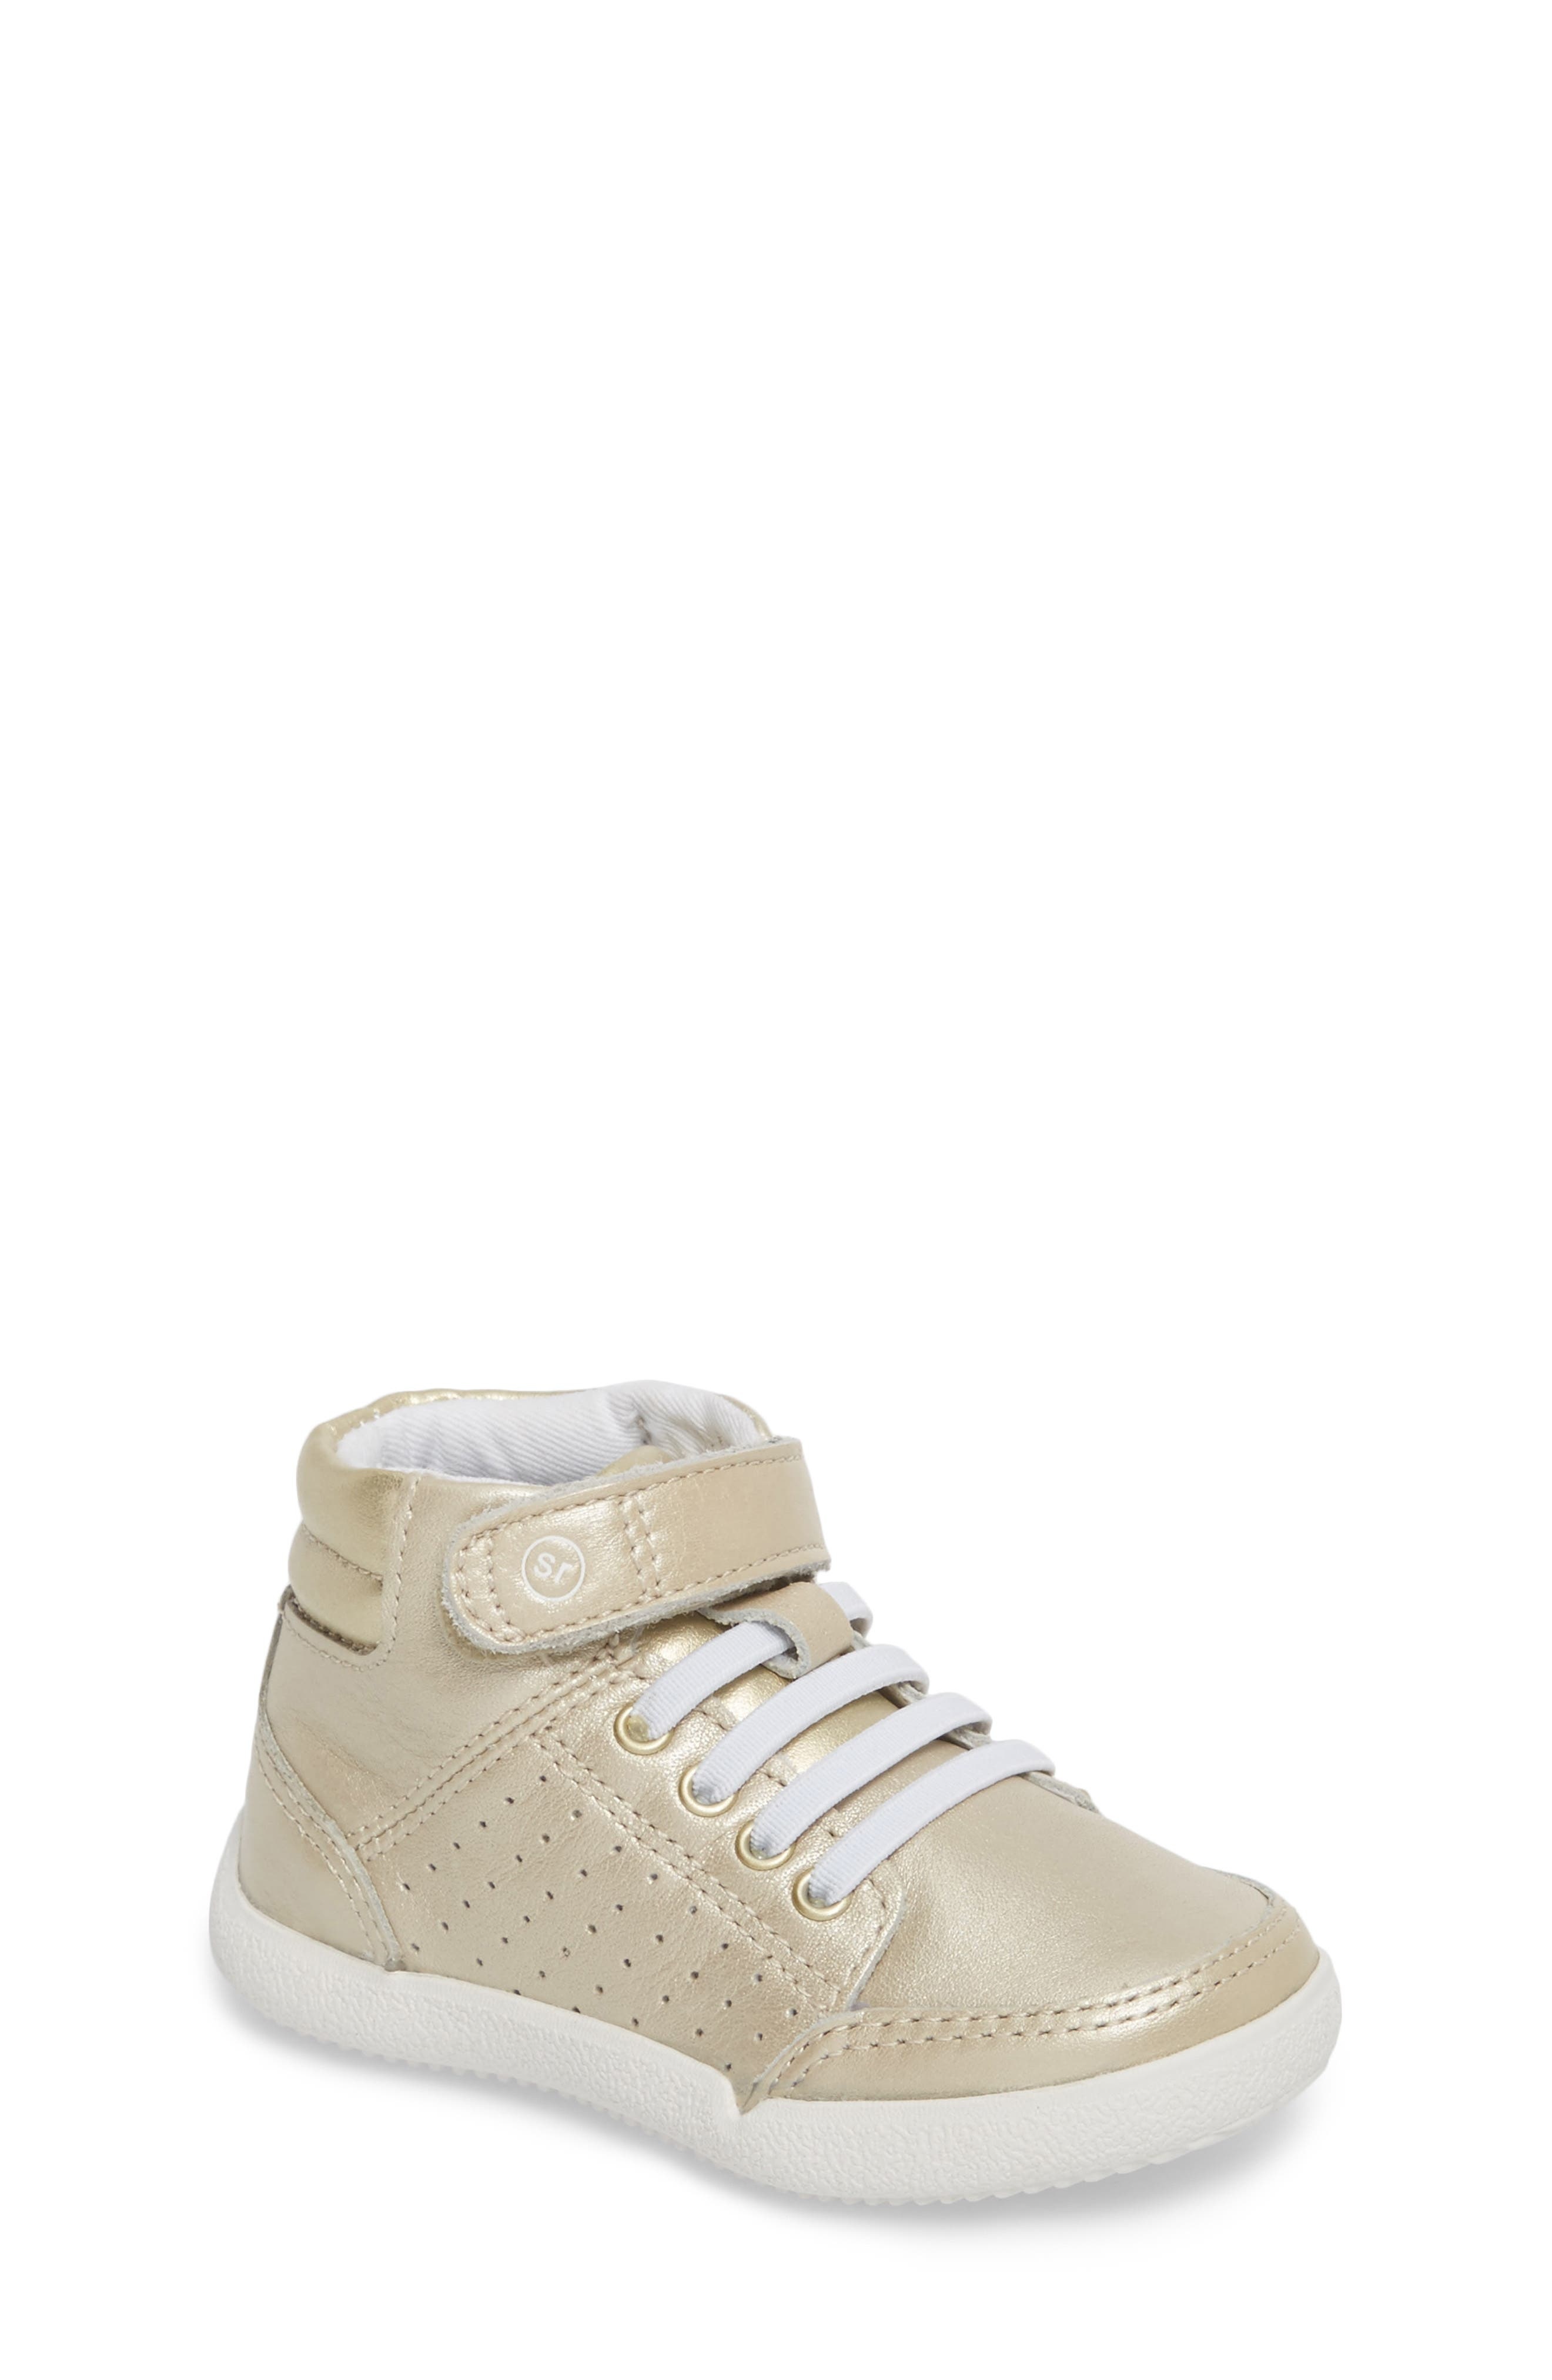 Stone High Top Sneaker,                             Main thumbnail 1, color,                             Champagne Leather